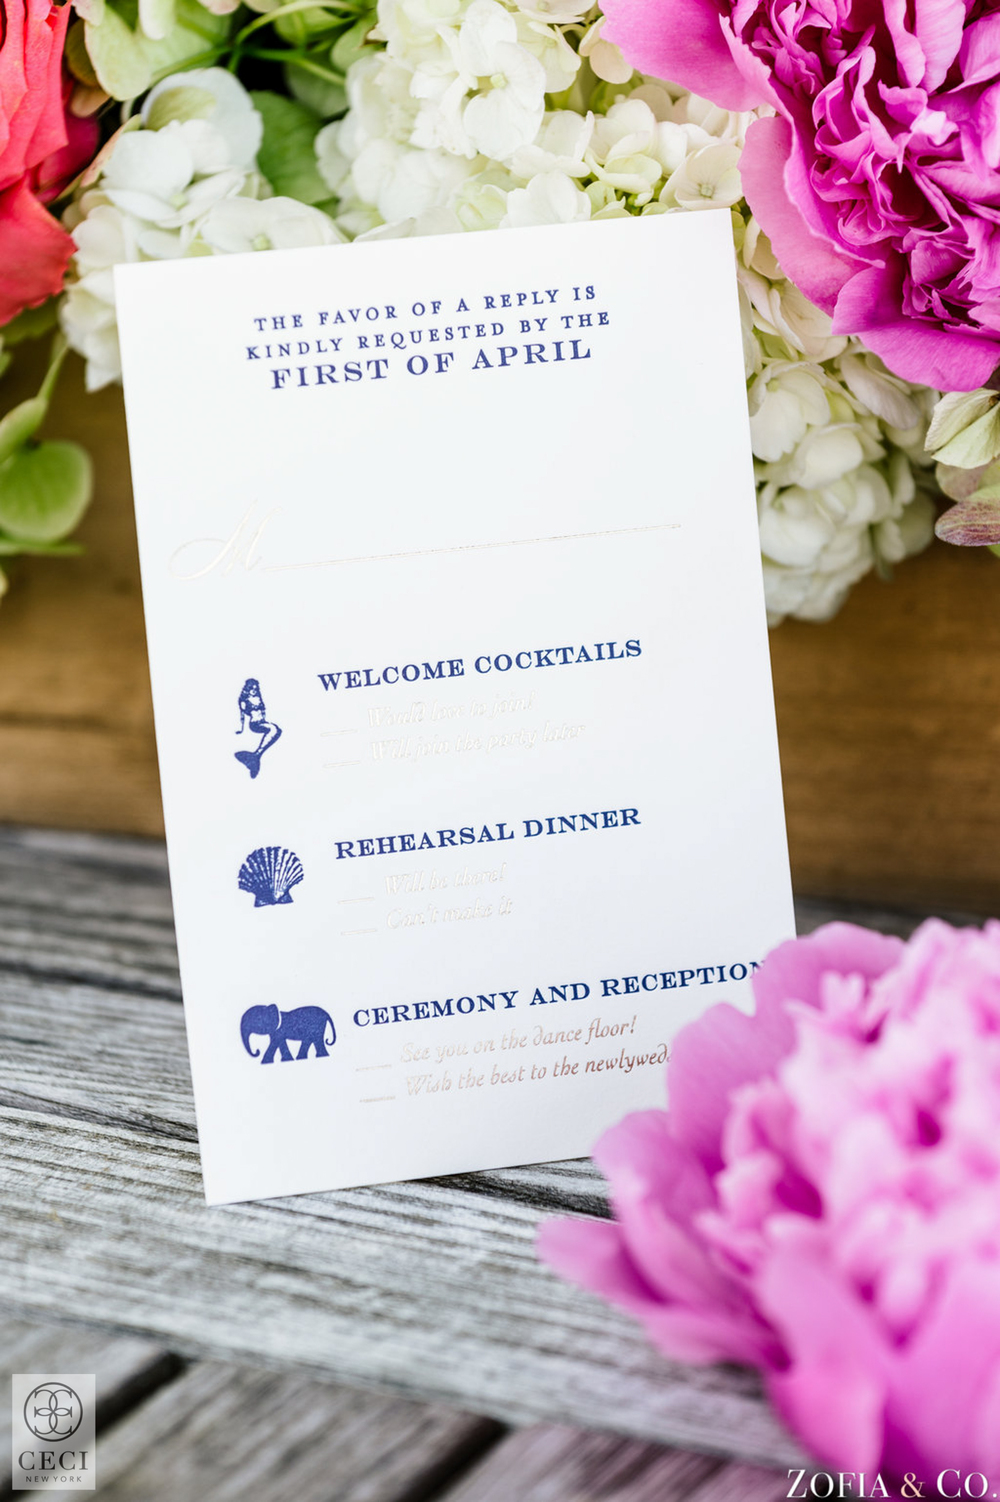 Ceci_New_York_Custom_Luxury_Wedding_LaserCut_Stationery_Personalized_Couture_Foil_Stamping_Black_Chic_-19 copy.jpg